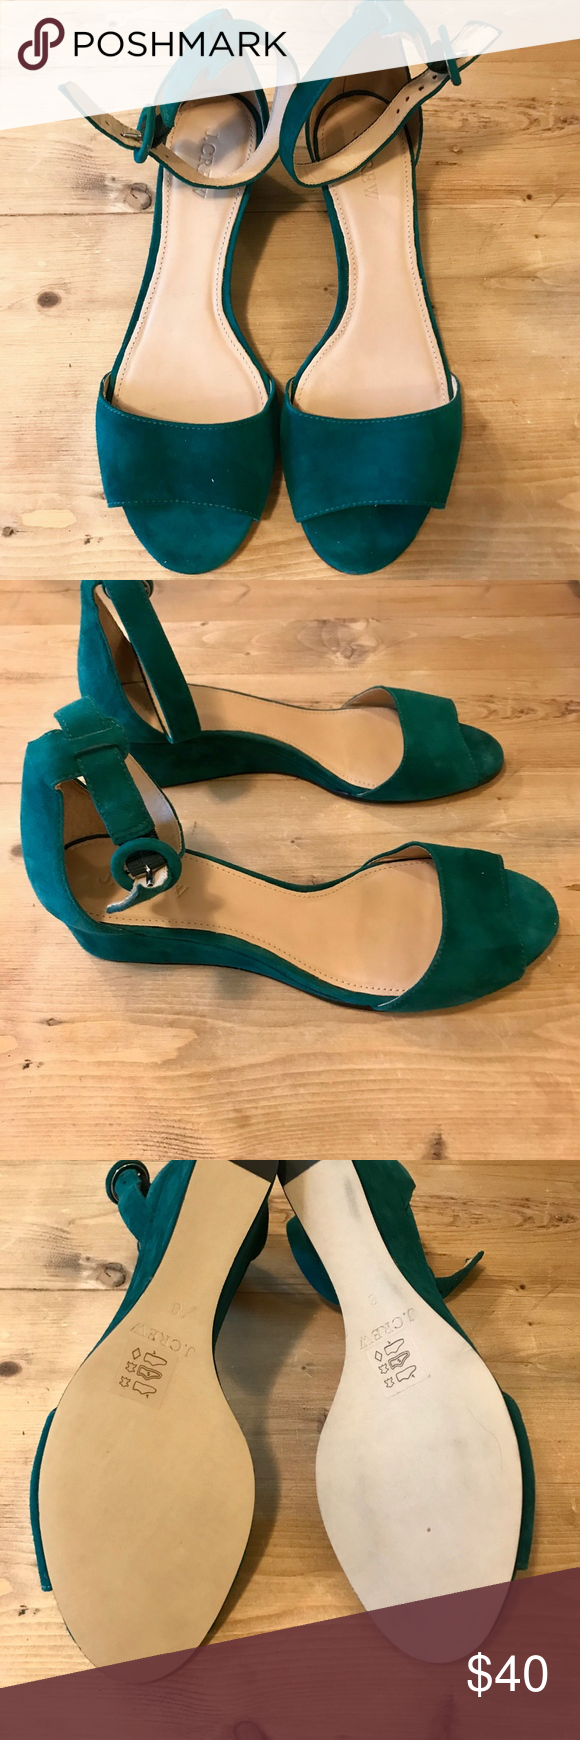 b309c2e78c26 J.Crew Laila Wedges in Dark Green Suede Like new  Excellent condition.  Comes with original box. J. Crew Shoes Wedges